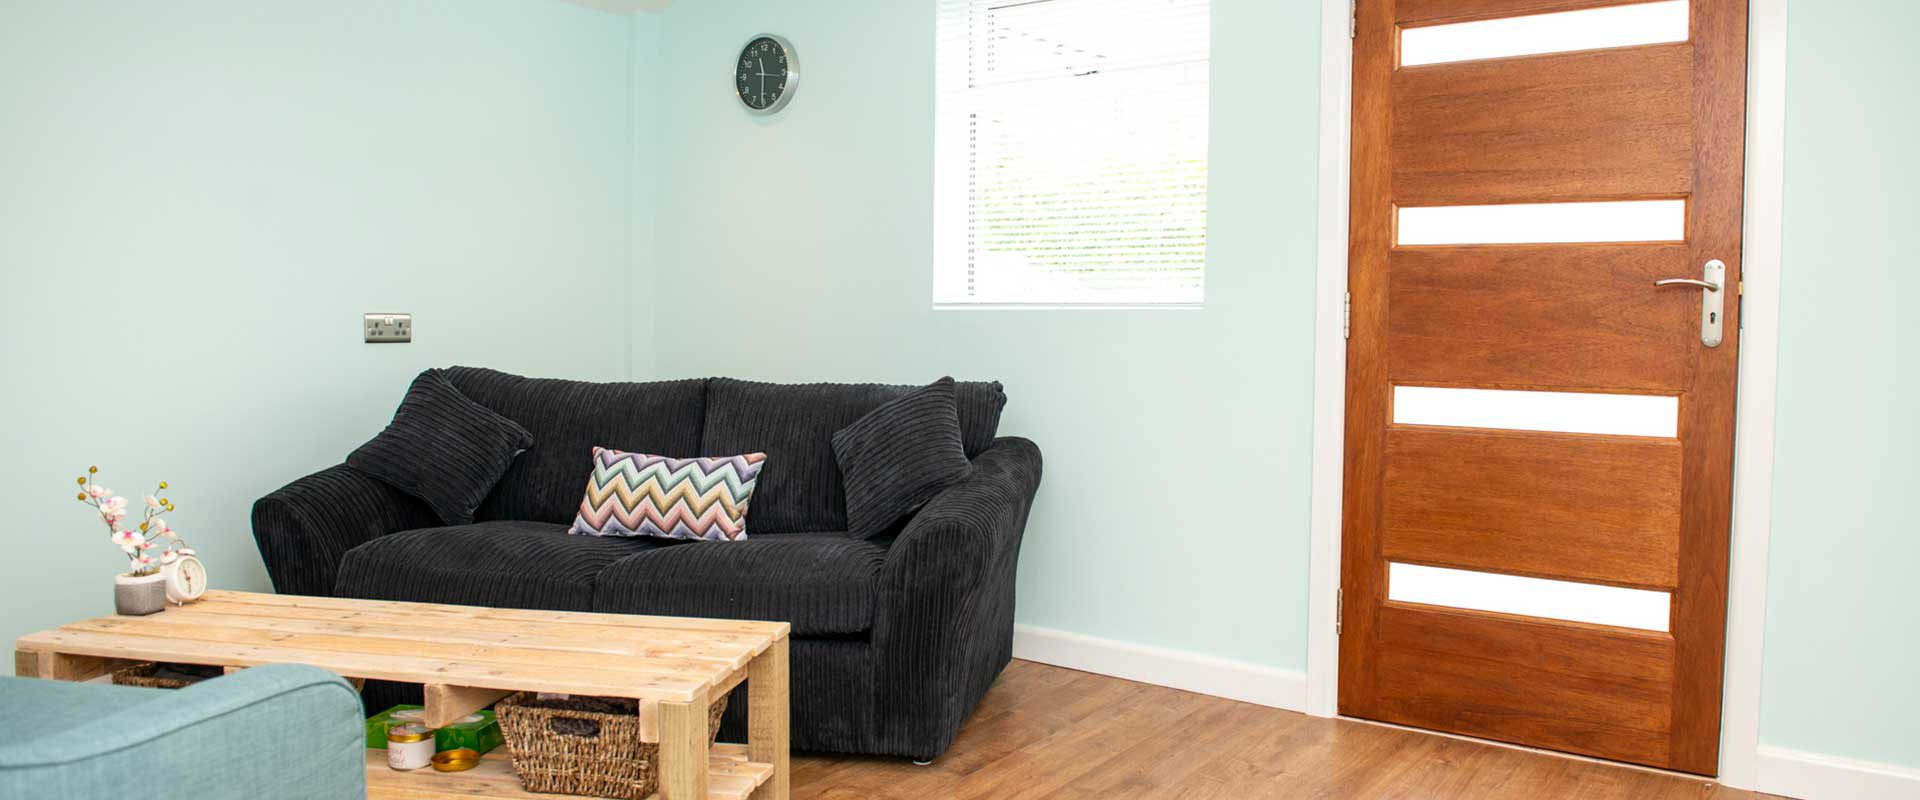 acacia-counselling-leeds-home-care-talking-depression-help-yeadon-comfy-inside-warm